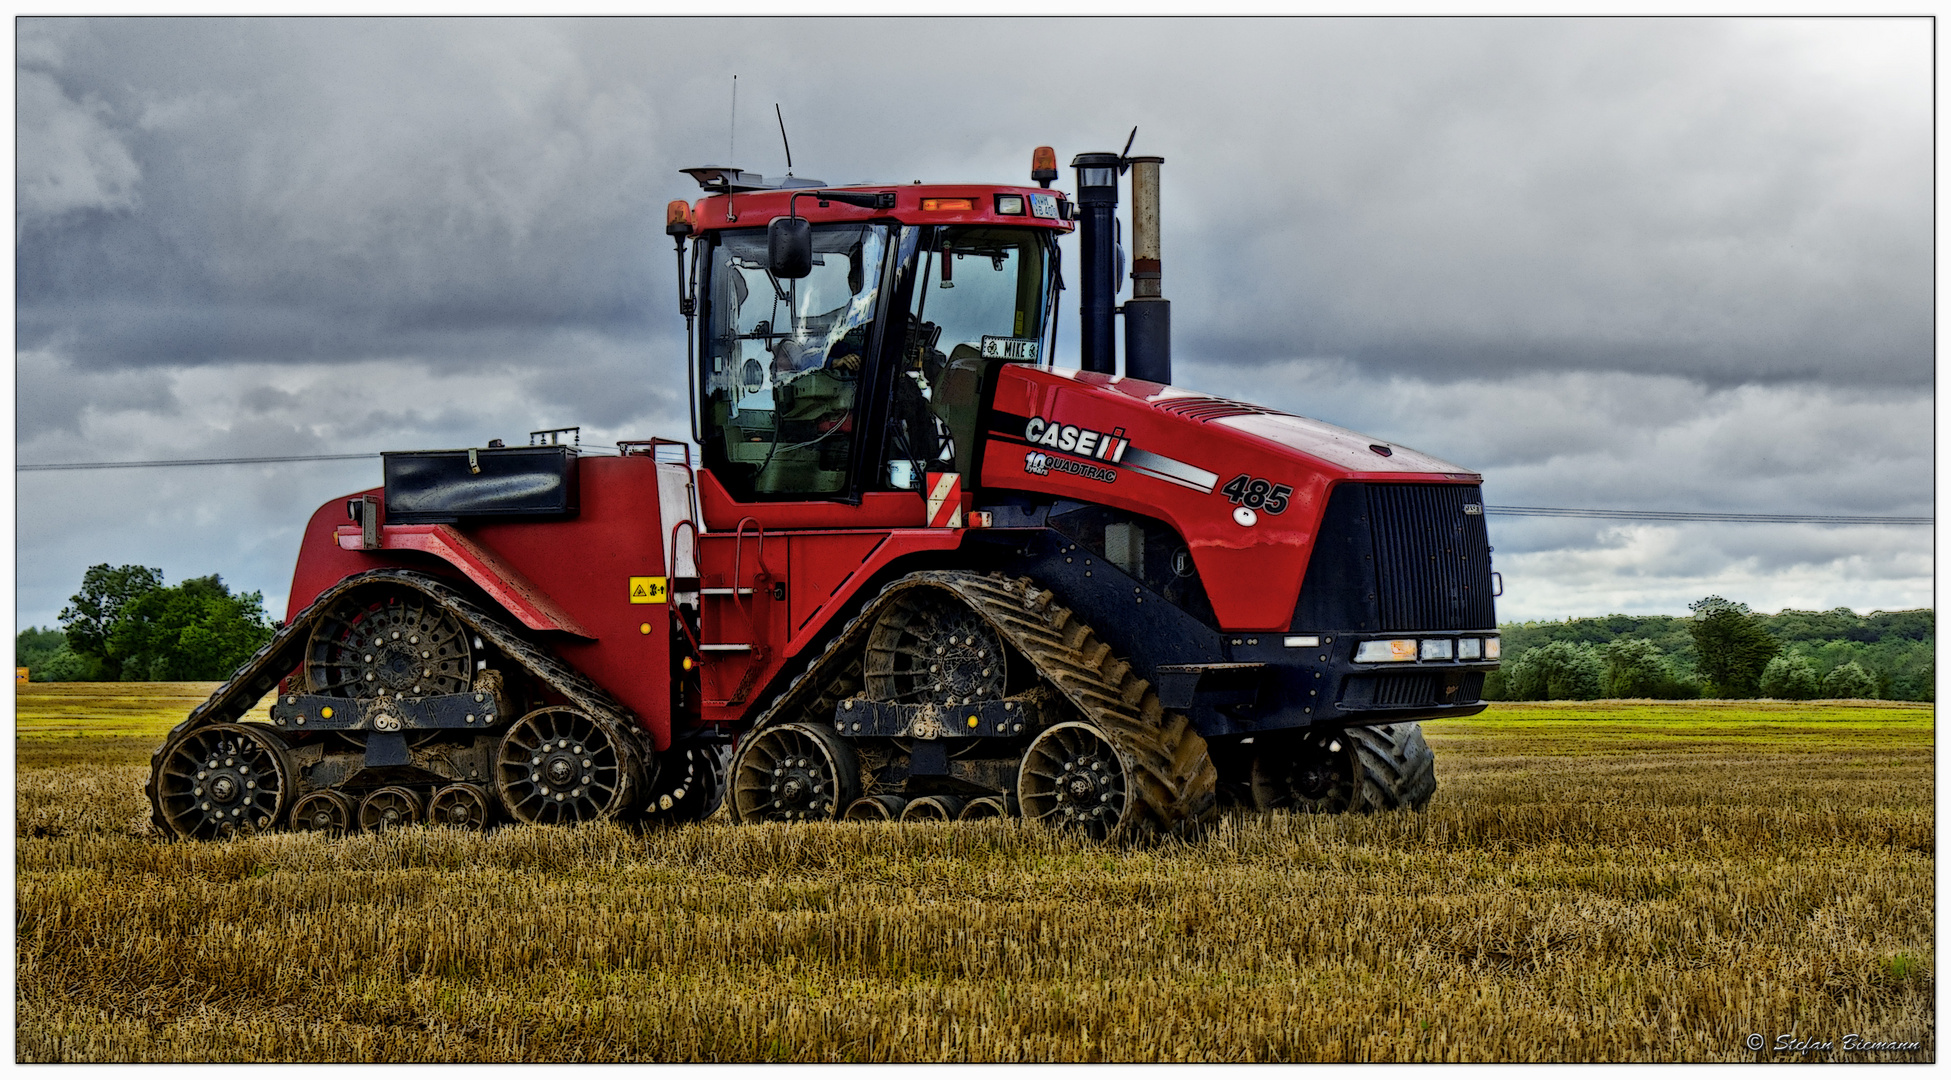 Case IH Quadtrac 485